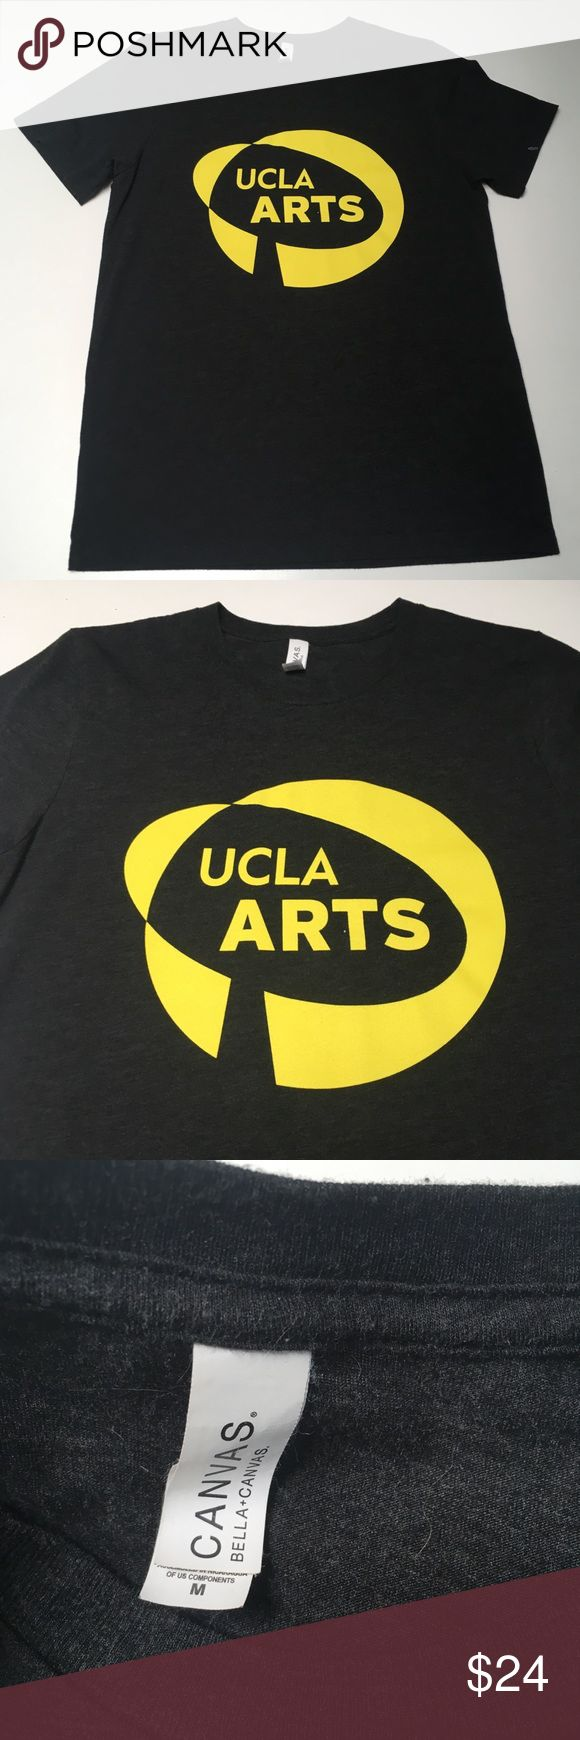 UCLA Arts Richard Serra Retires Logo Shirt Awesome shirt - too bad the logo changed Worked at Royce Hall for almost a decade - I got this shirt around 2010 Trusted quality and comfort  Please check measurements in pics for fit reference.     Smoke and pet free storage.  Happy to answer any questions    Thanks for looking Canvas Shirts Tees - Short Sleeve